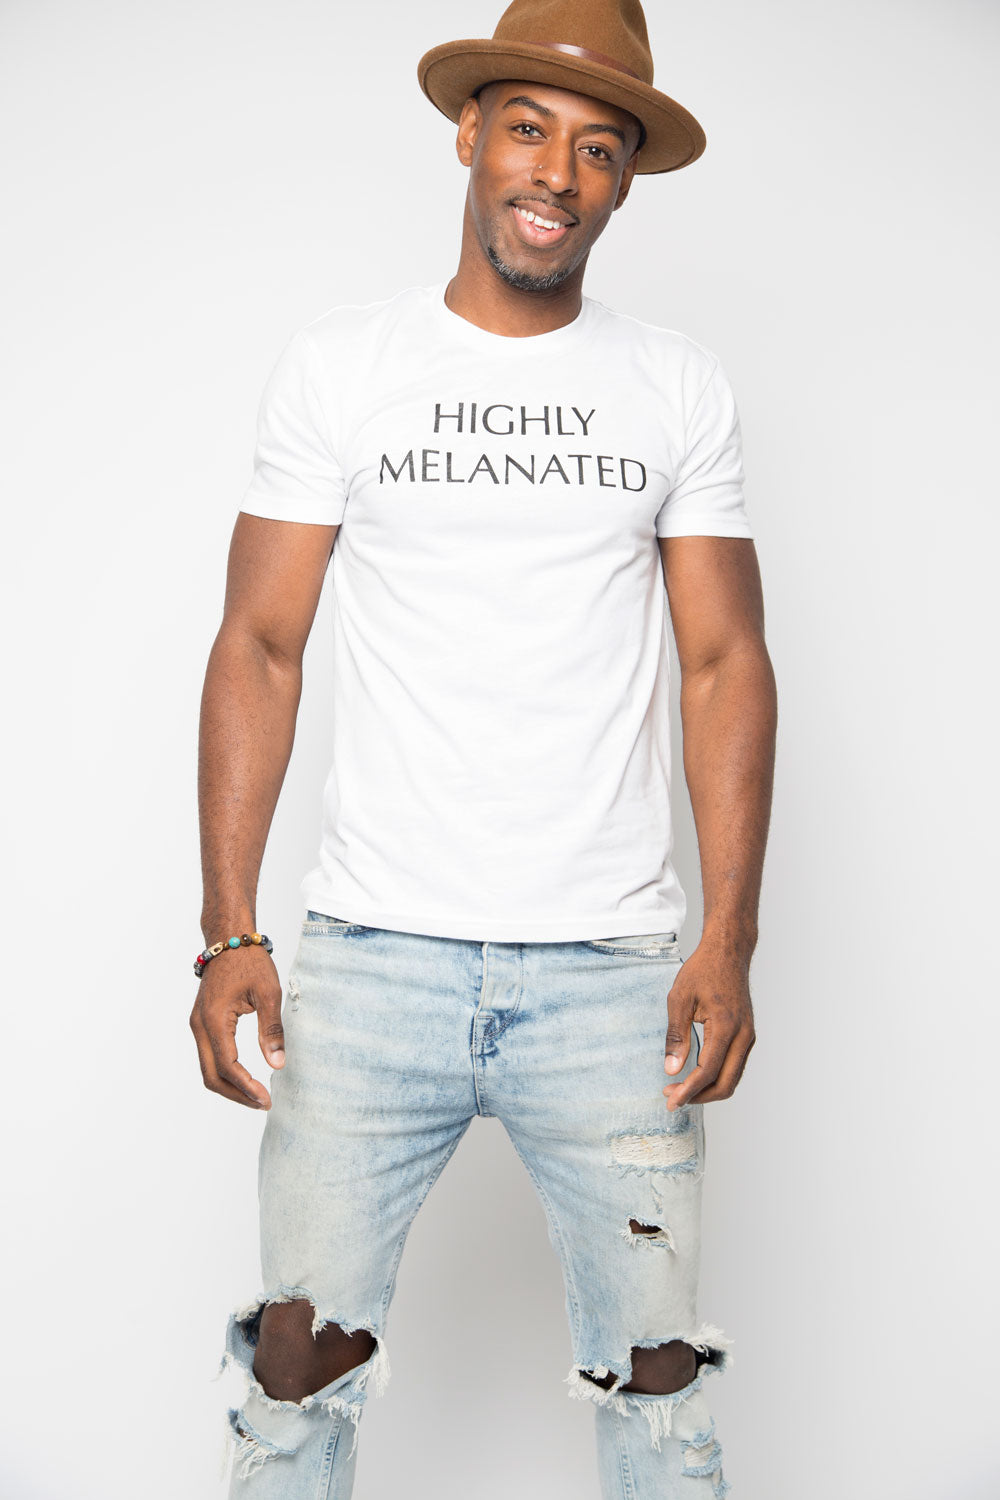 Highly Melanated Shirt in White - Trunk Series, LLC